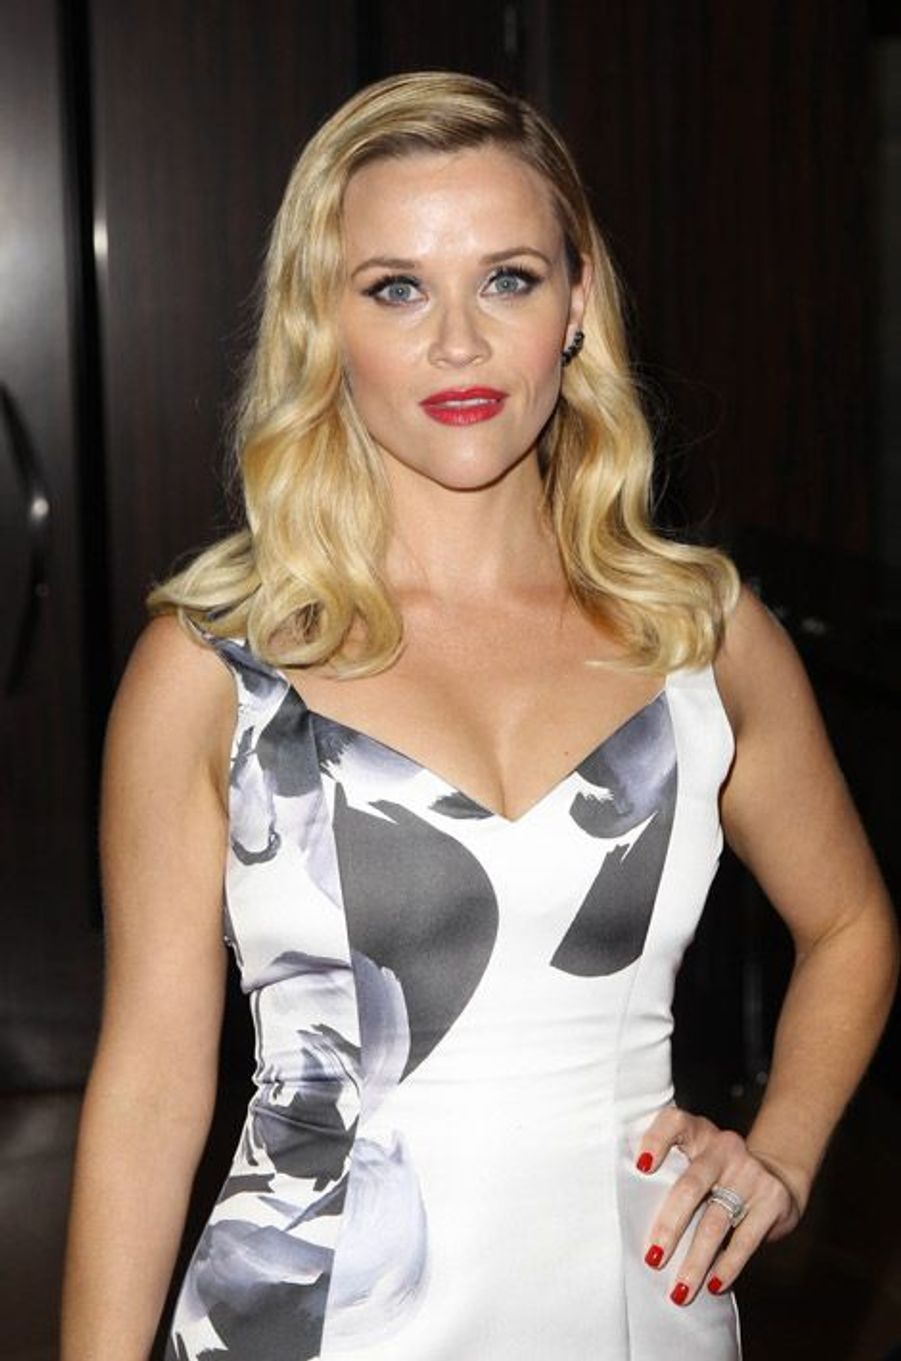 L'actrice Reese Witherspoon au gala American Cinematheque award en l'honneur de Matthew McConaughey, le 21 octobre 2014